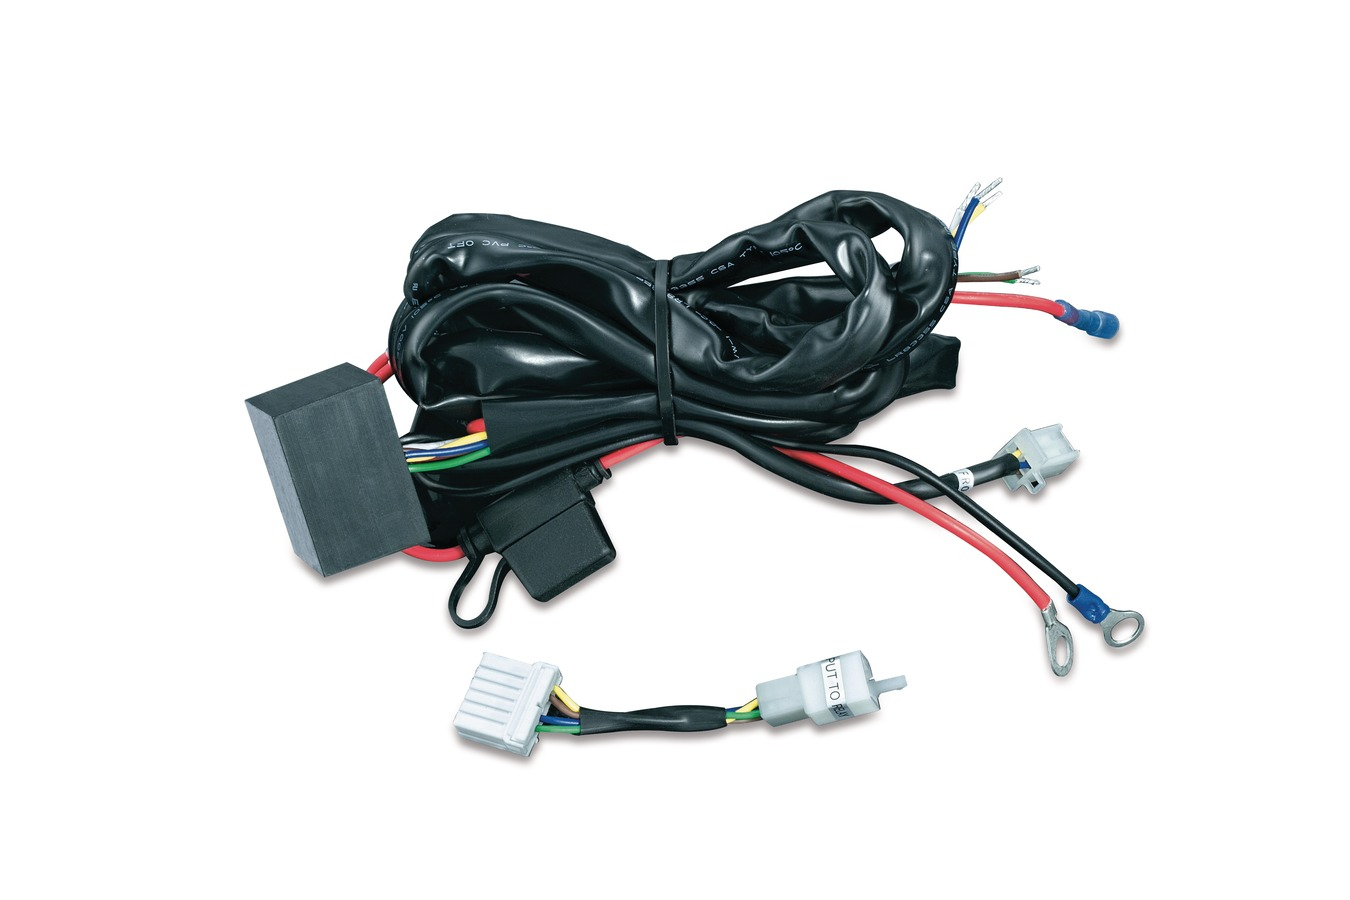 Trailer Wiring Harnesses | Trailer Hitches & Wiring | Touring - Harley Davidson Trailer Wiring Diagram